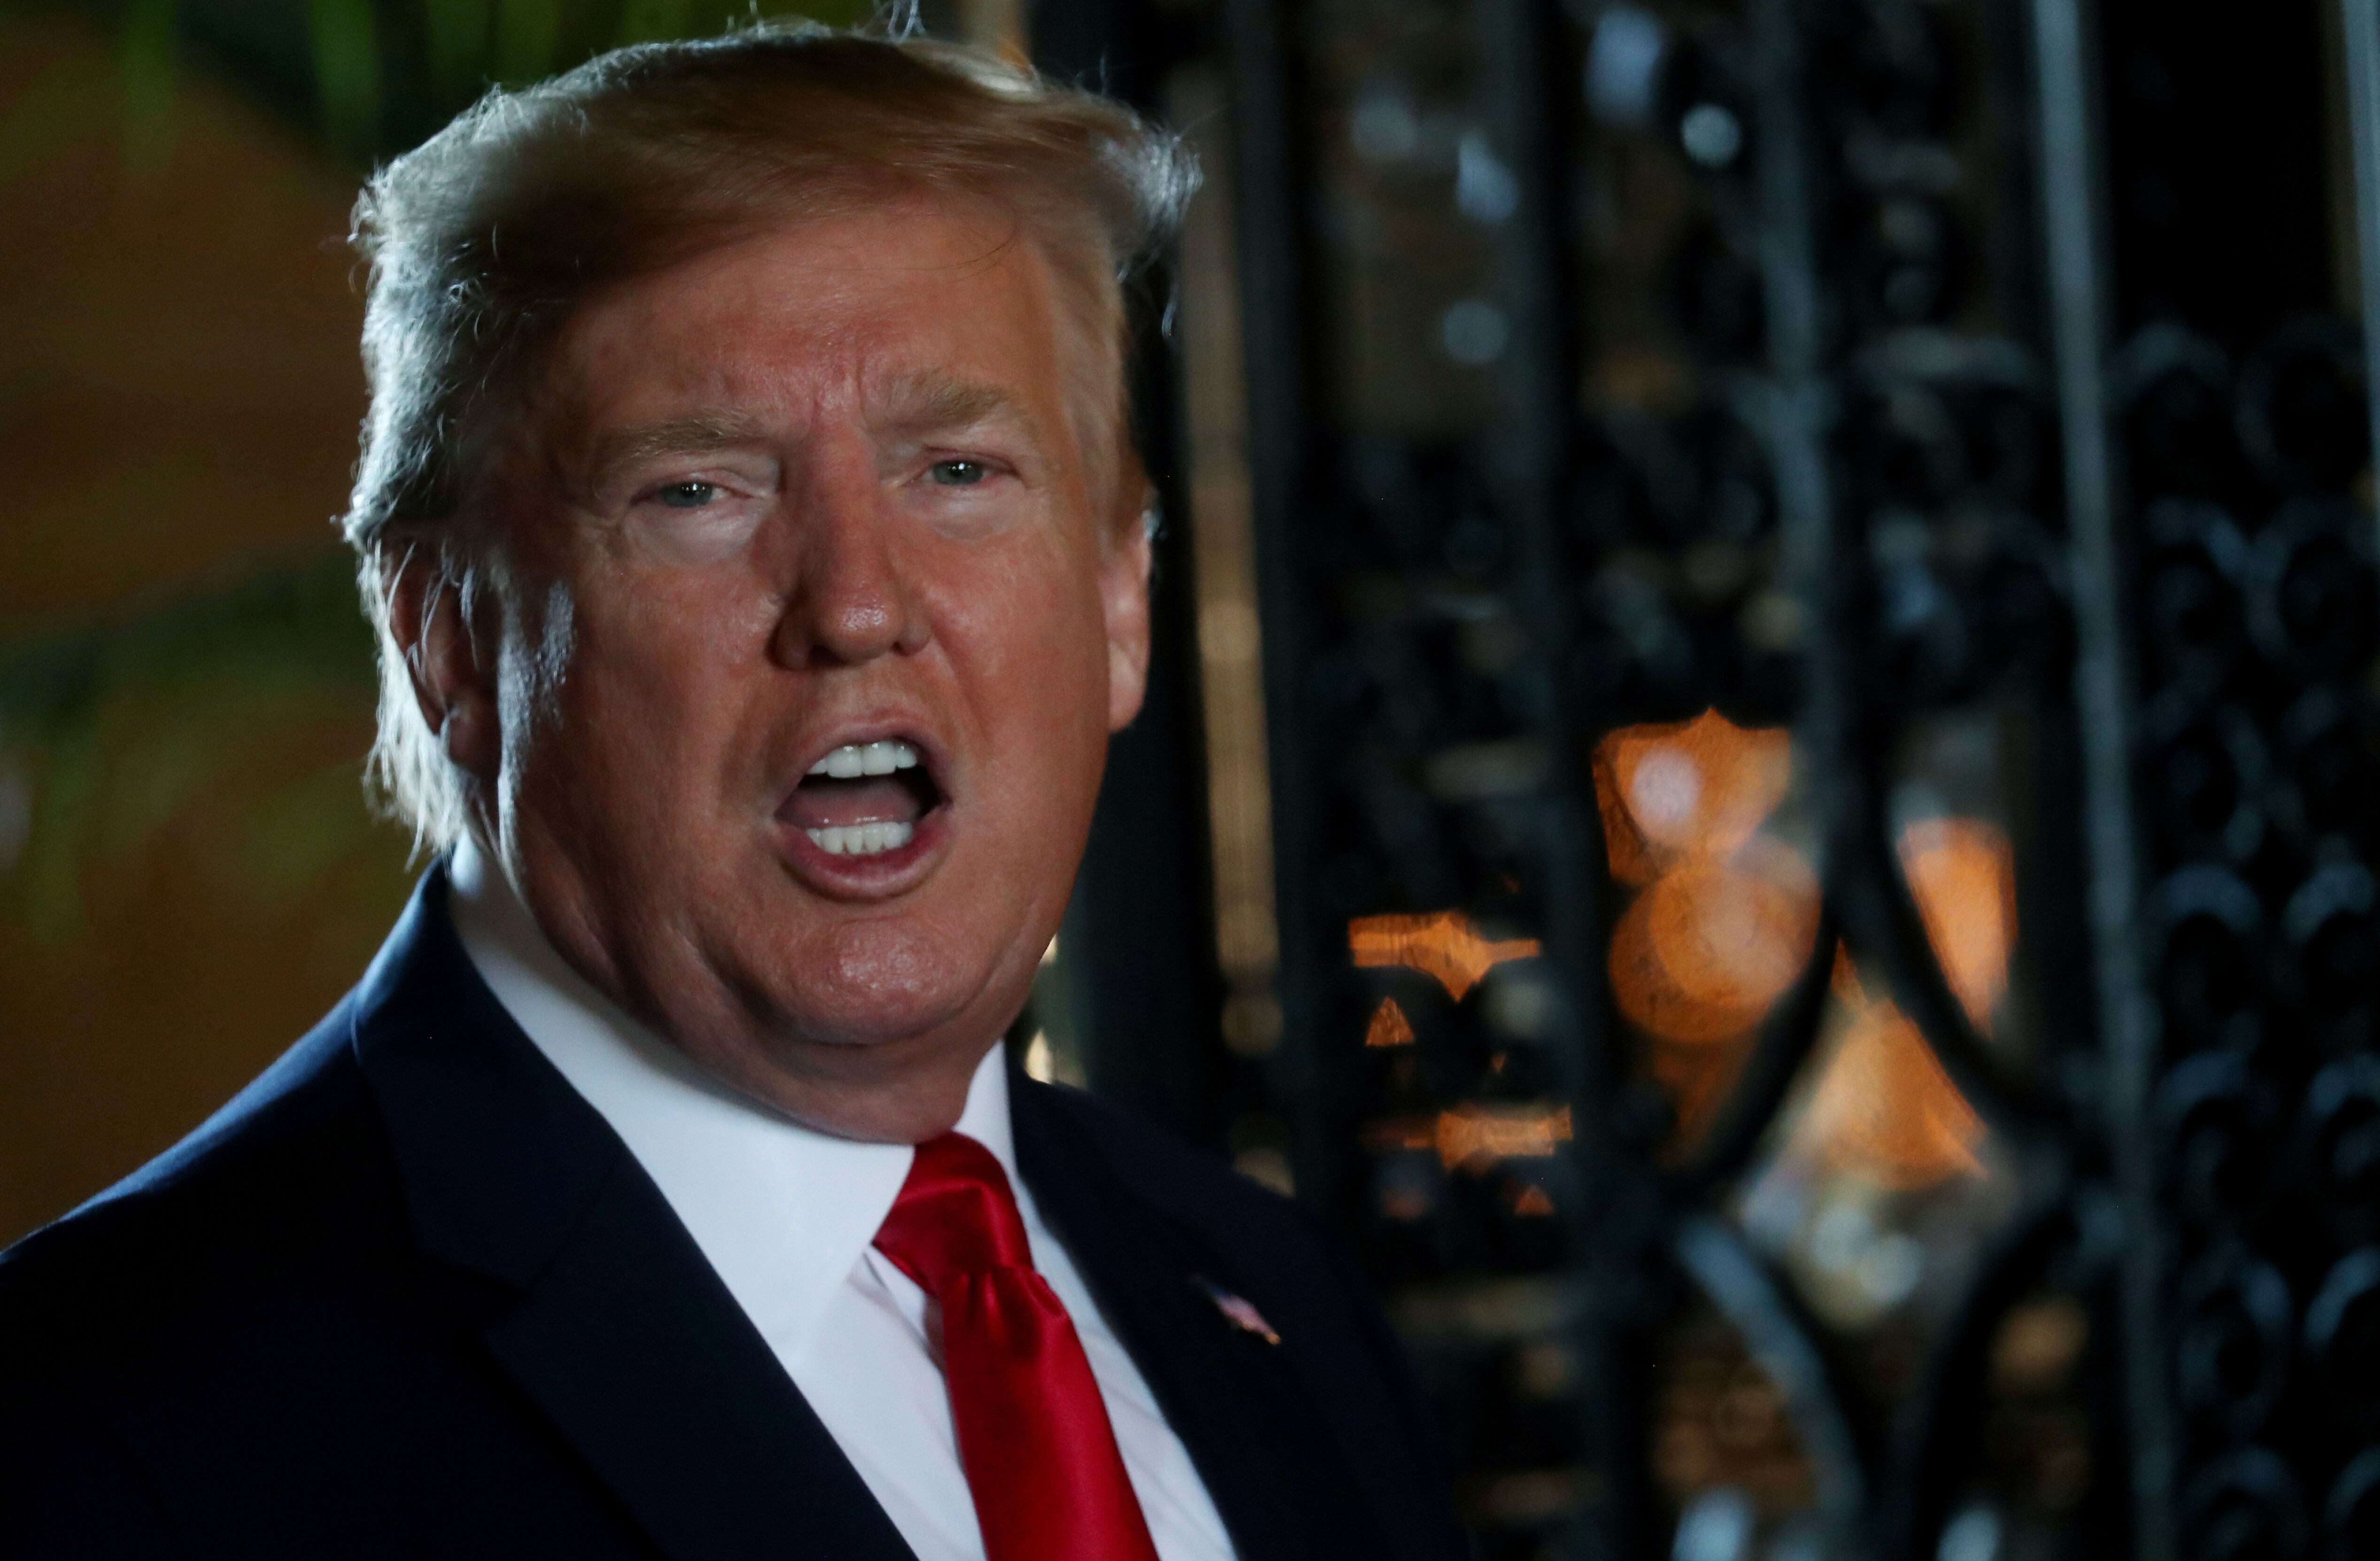 Trump Blasts 'Crazy' Pelosi After Calling For 'Respect' In His Christmas Message